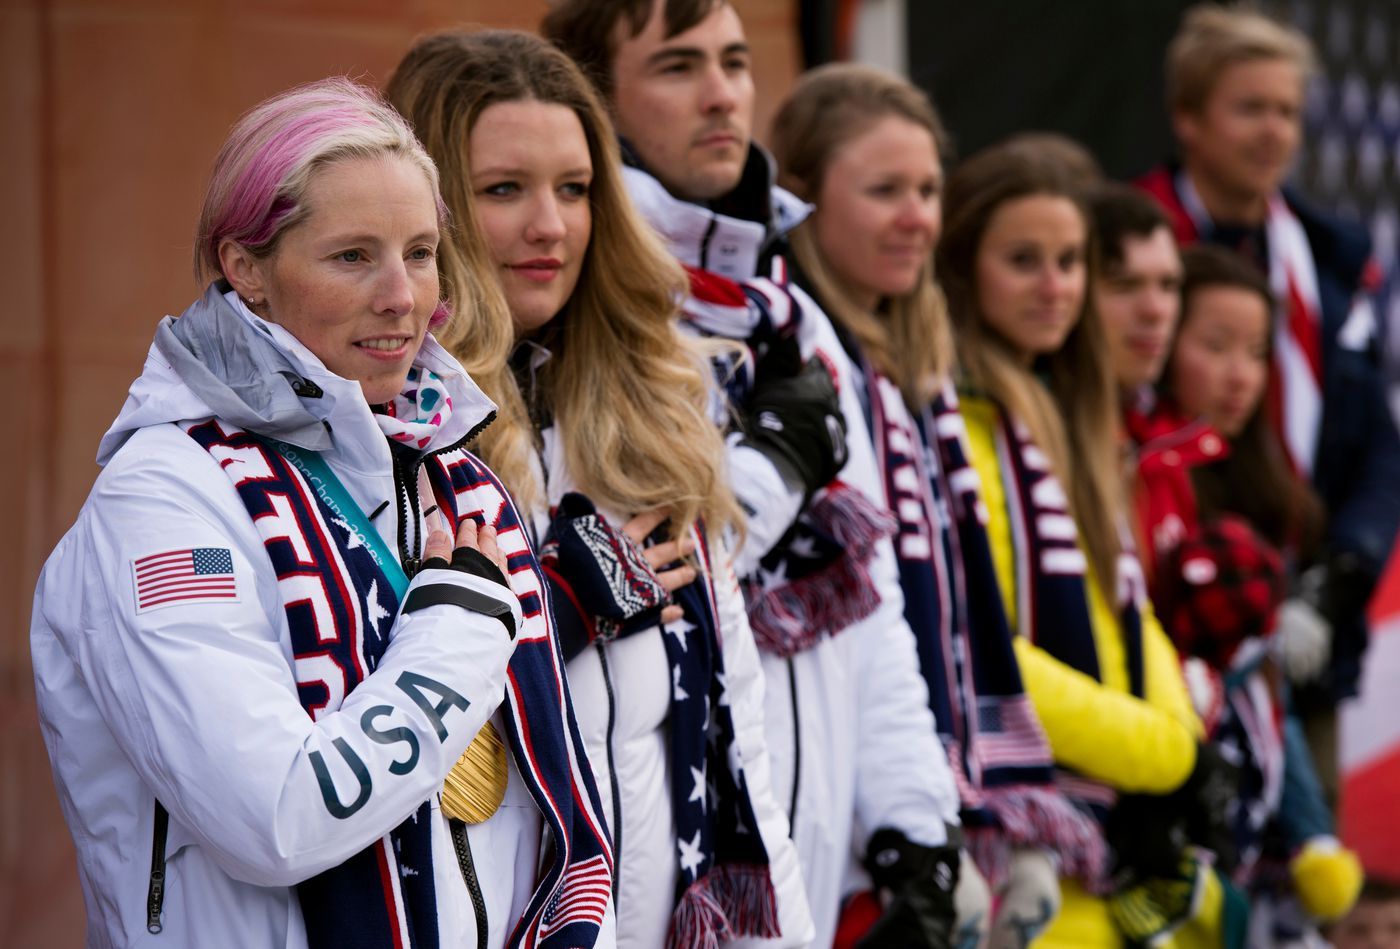 Kikkan Randall, left, stands with several other Alaskan Olympians who were recognized in Town Square on April 4, 2018. Hundreds of Alaskans filled Town Square Park in Anchorage, Alaska, for a celebration of gold medal winner Kikkan Randall and the state's other Winter Olympians who competed in Pyeongchang, South Korea. Photograpahed on April 4, 2018. (Marc Lester / ADN)